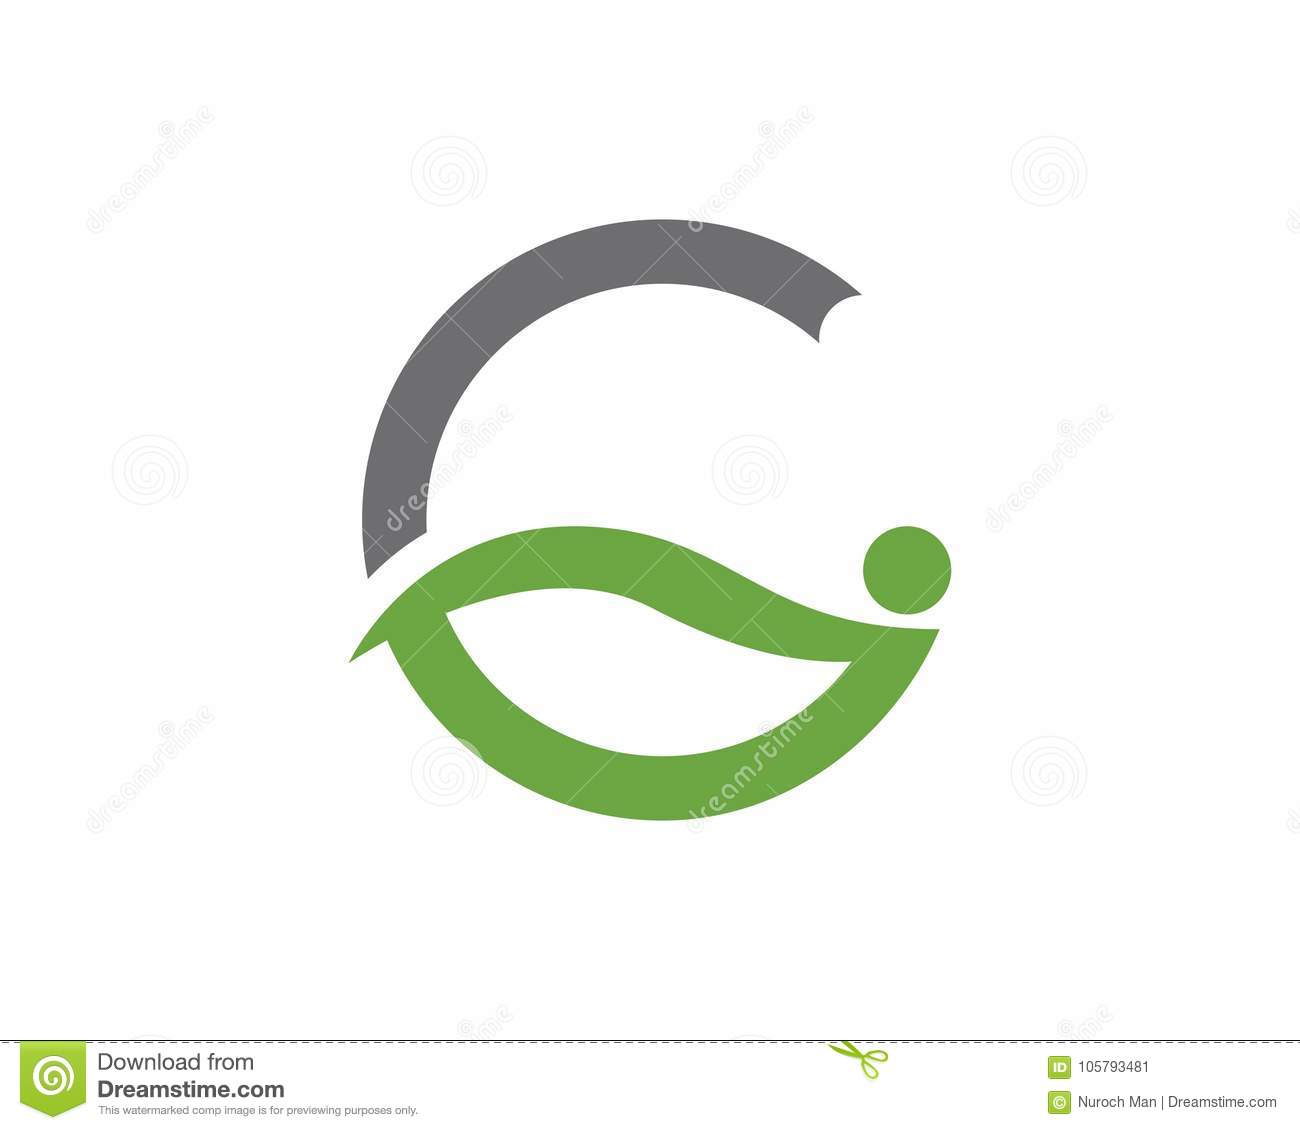 G letter logos people symbol template stock illustration g letter logos people symbol template g letter logos people symbol template maxwellsz